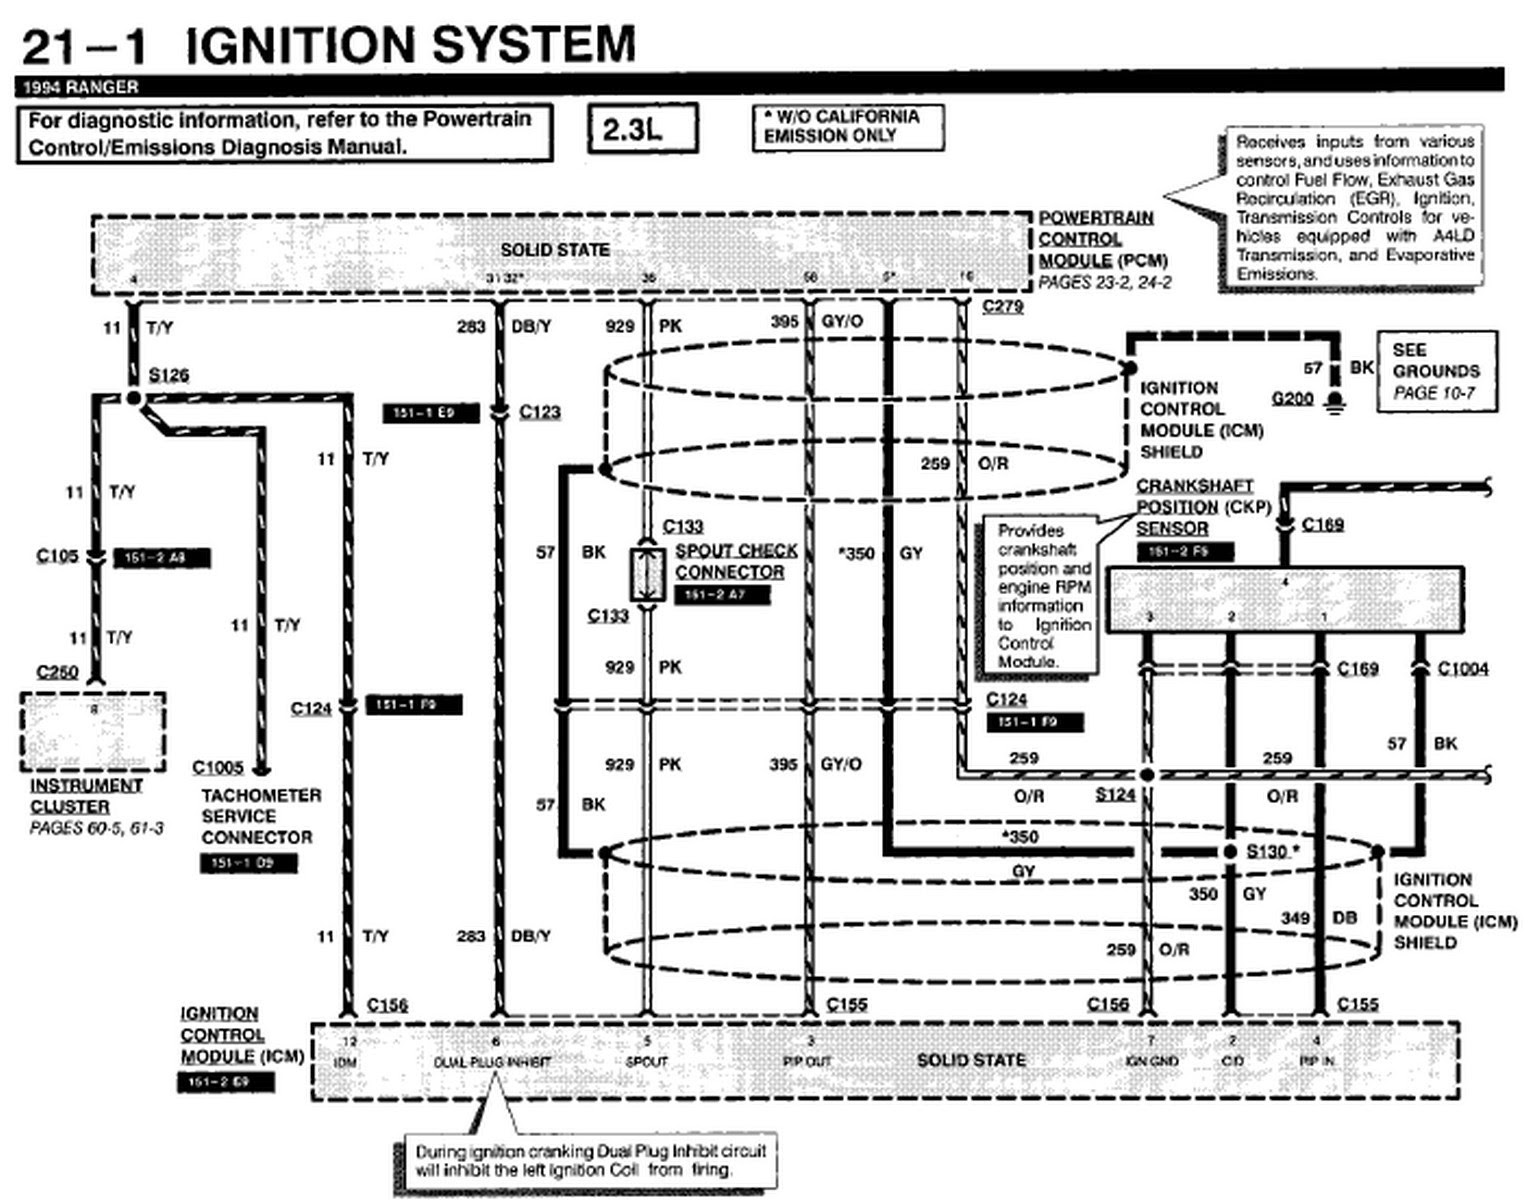 1991 Ford Ranger Engine Diagram - Wiring Diagram Schema